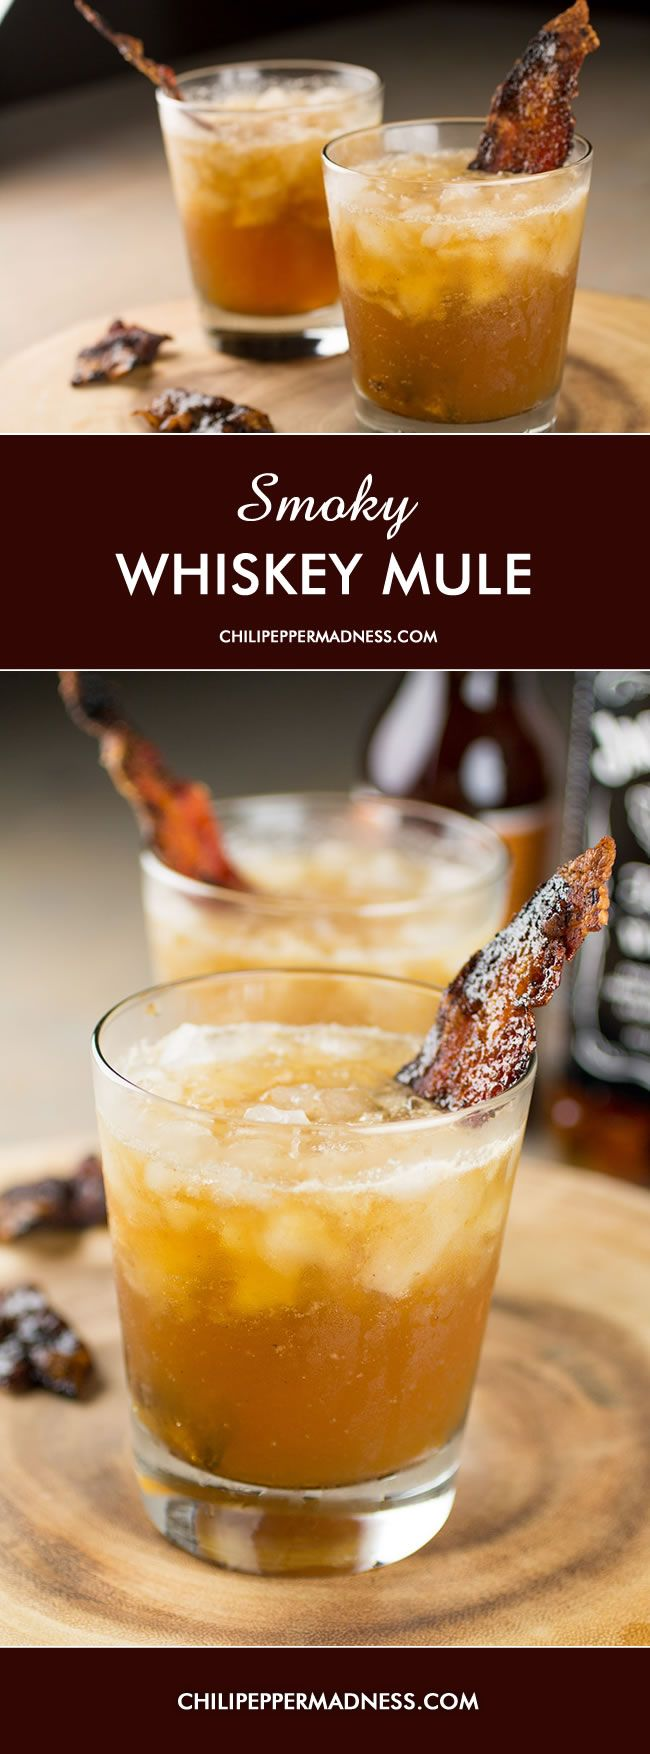 Smoky Whiskey Mule - Candied Bacon infused Whiskey with Hard Ginger Beer   ChiliPepperMadness.com